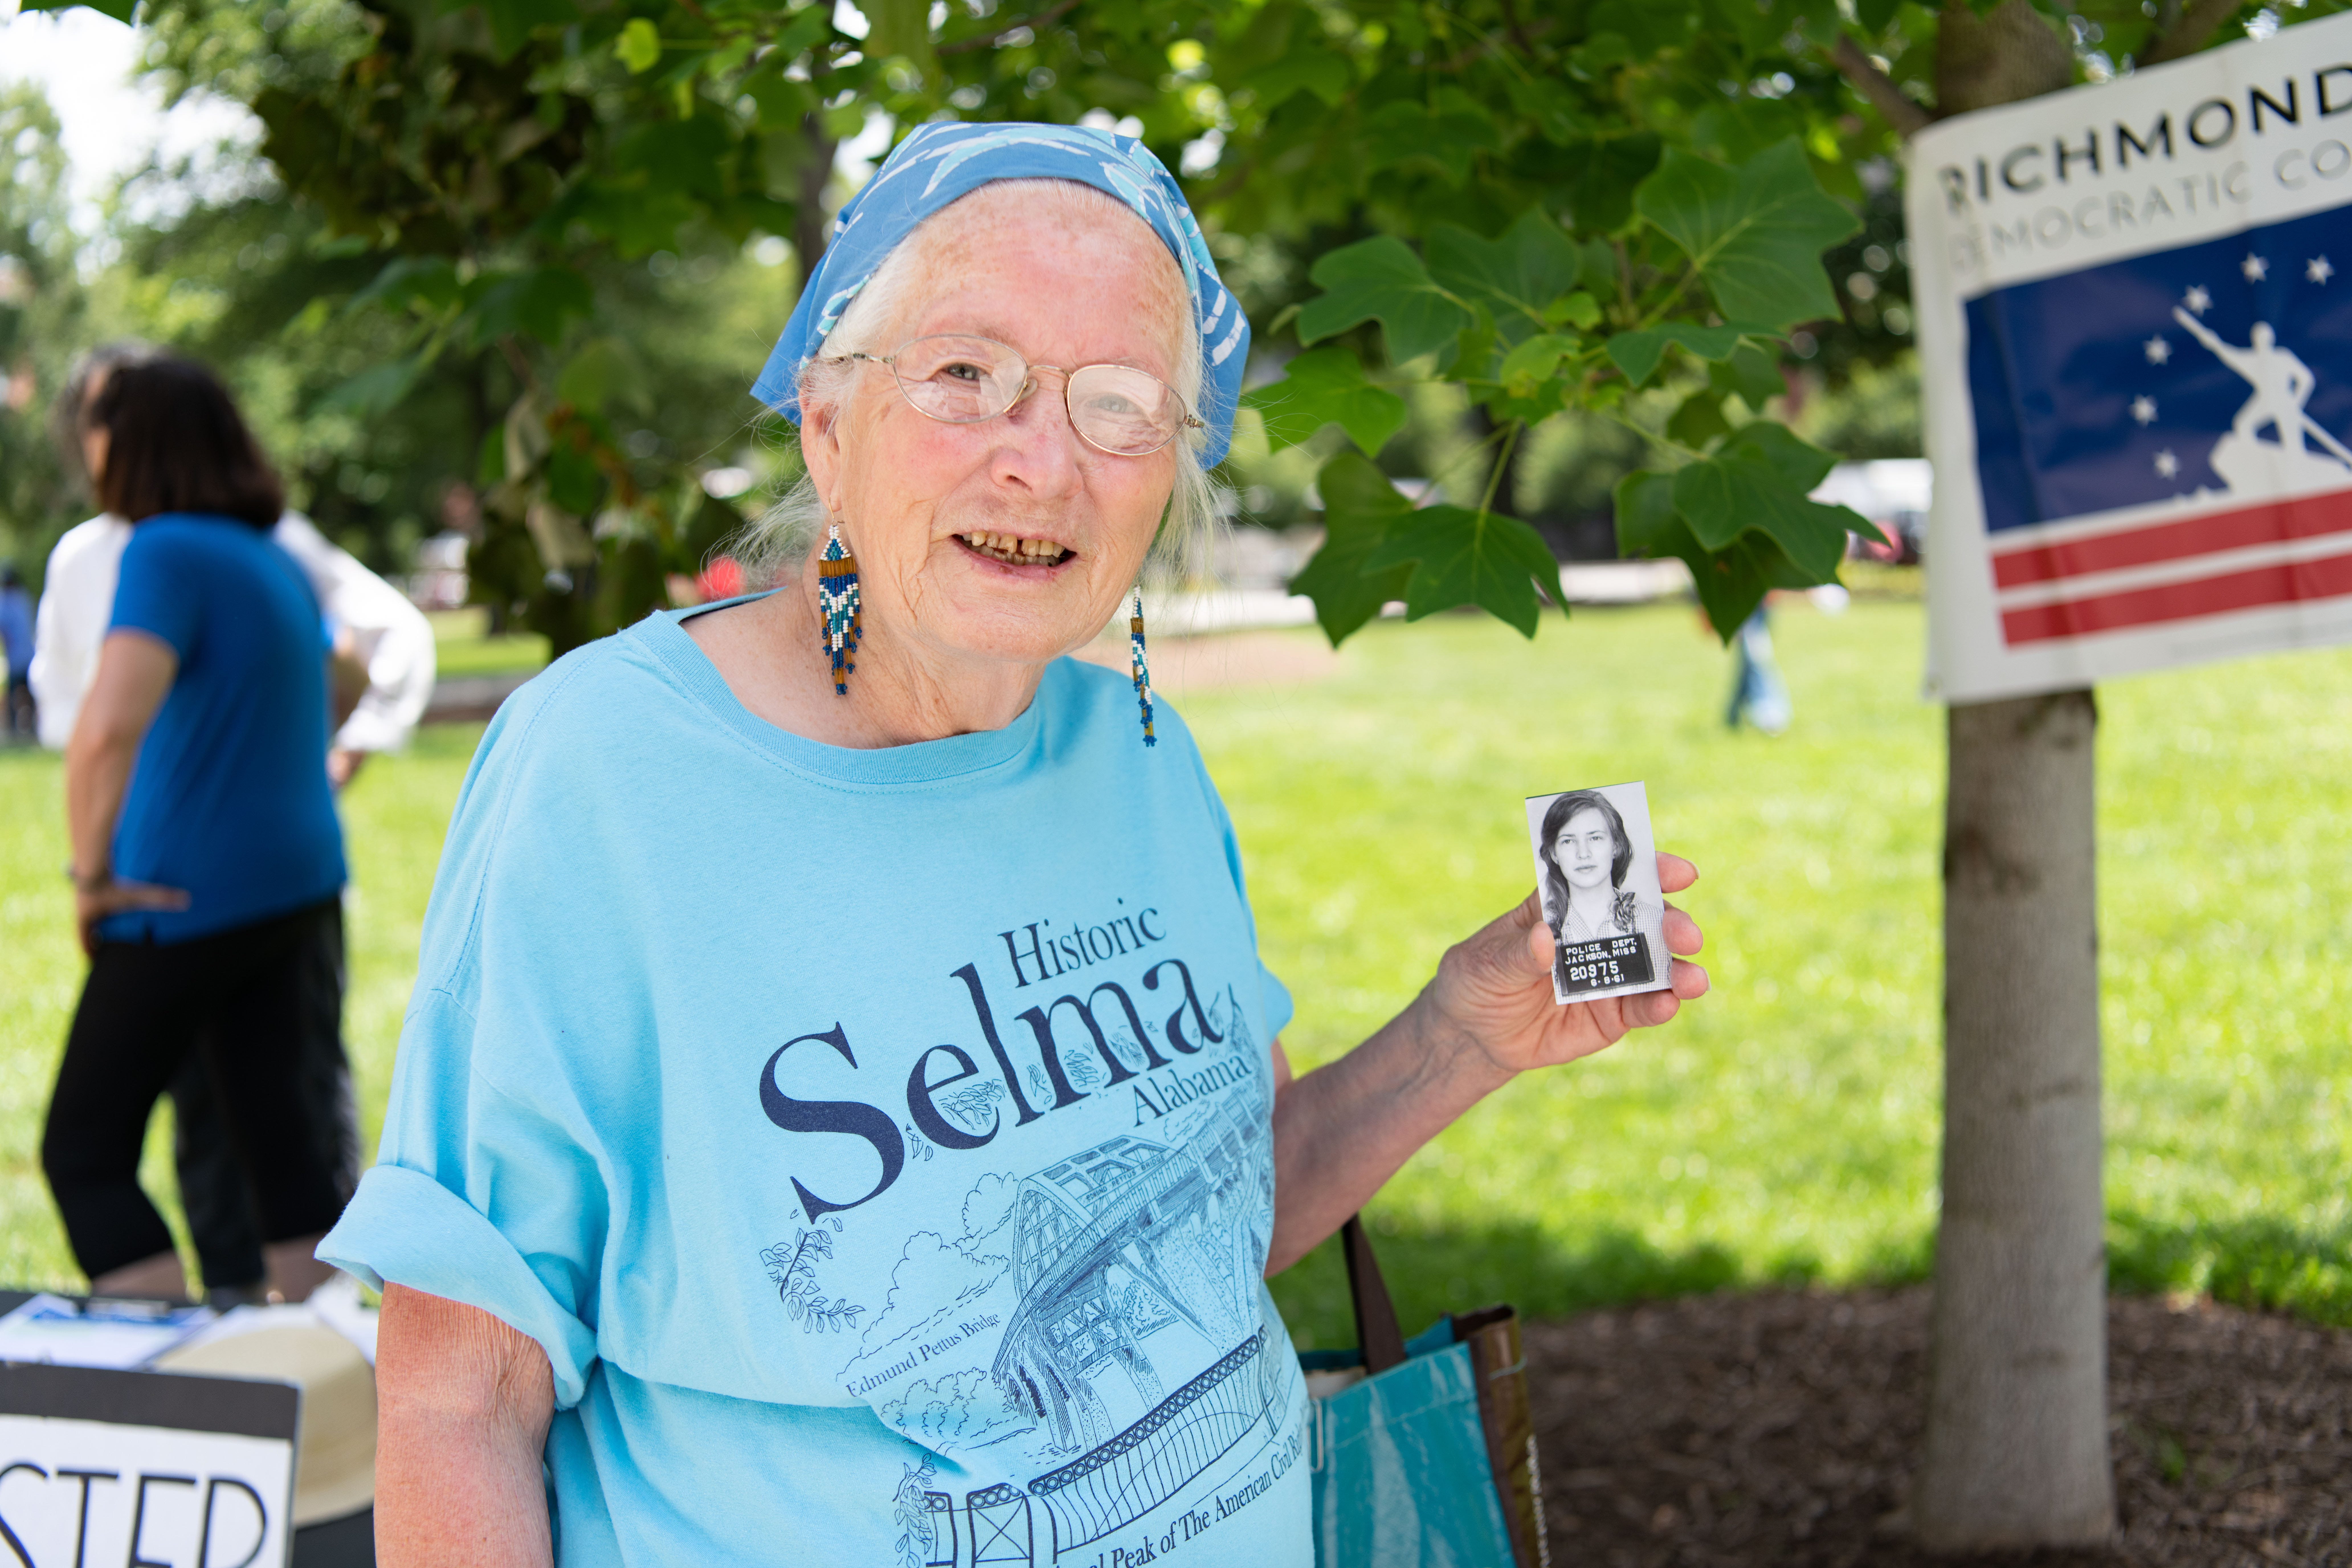 Joan Trumpauer Mulholland, who participated in the Freedom Rides in 1961, holds up a copy of her mugshot from being arrested in Jackson, Miss., during an event hosted by the activist group Black Voters Matter marking the 60th anniversary of the rides in Monroe Park in Richmond, Va., on June 25, 2021.